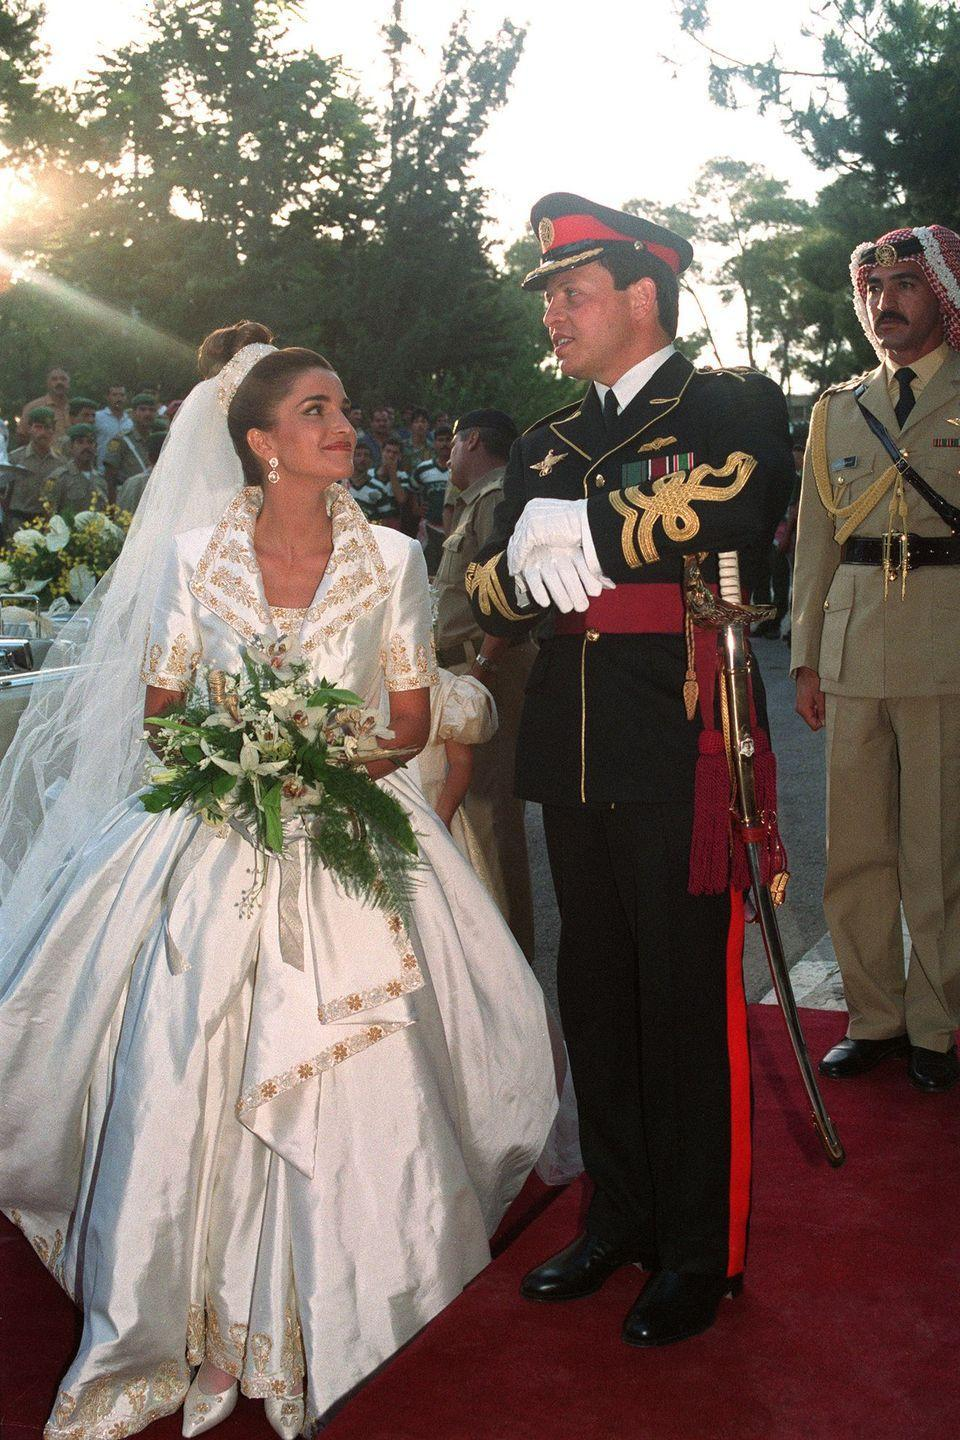 <p>Prince Abdullah II met Rania Al Yassin at a dinner party his sister was hosting. At the time, Rania worked for Apple in Amman. The two were engaged just two months later, and Abdullah II ascended the throne in 1999 and became the King of Jordan, just a month before the couple wed. Upon their nuptials, Rania became the Queen of Jordan.</p>